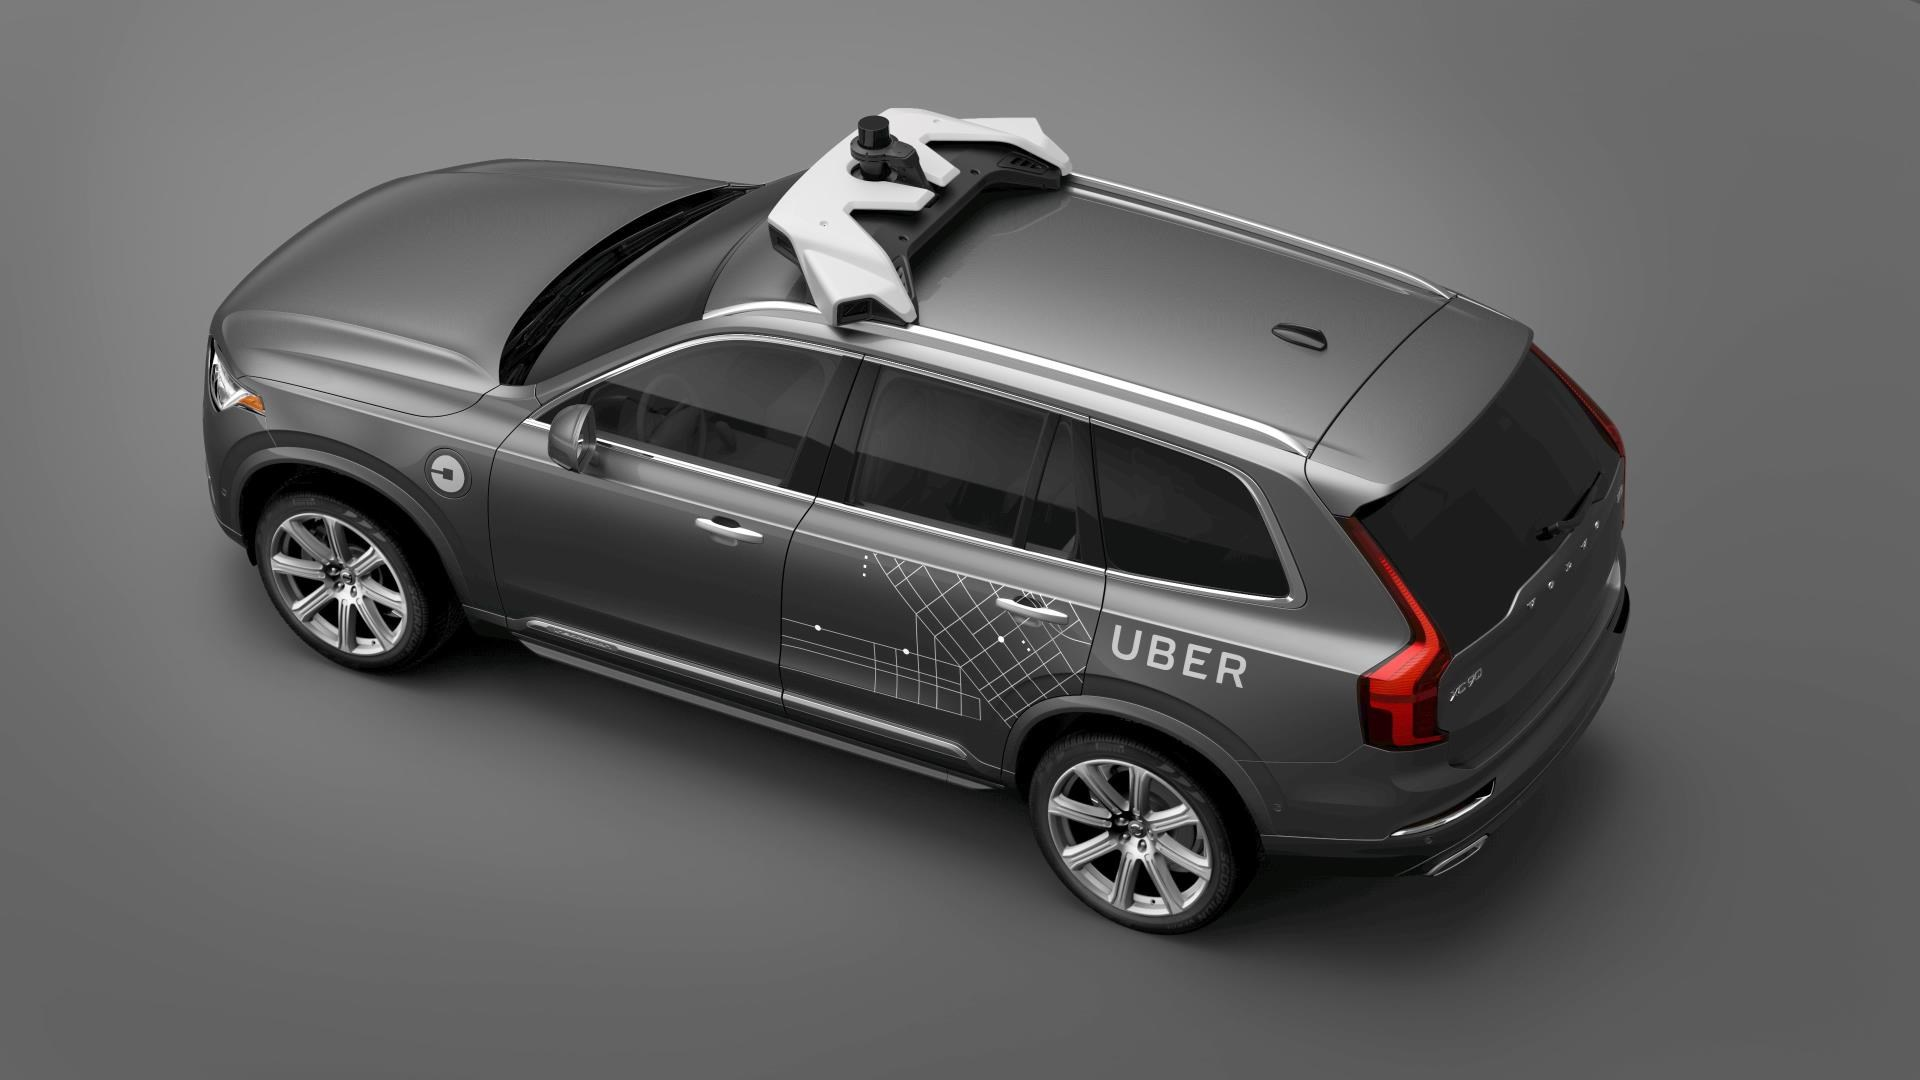 Uber strikes deal to buy 24000 autonomous Volvos